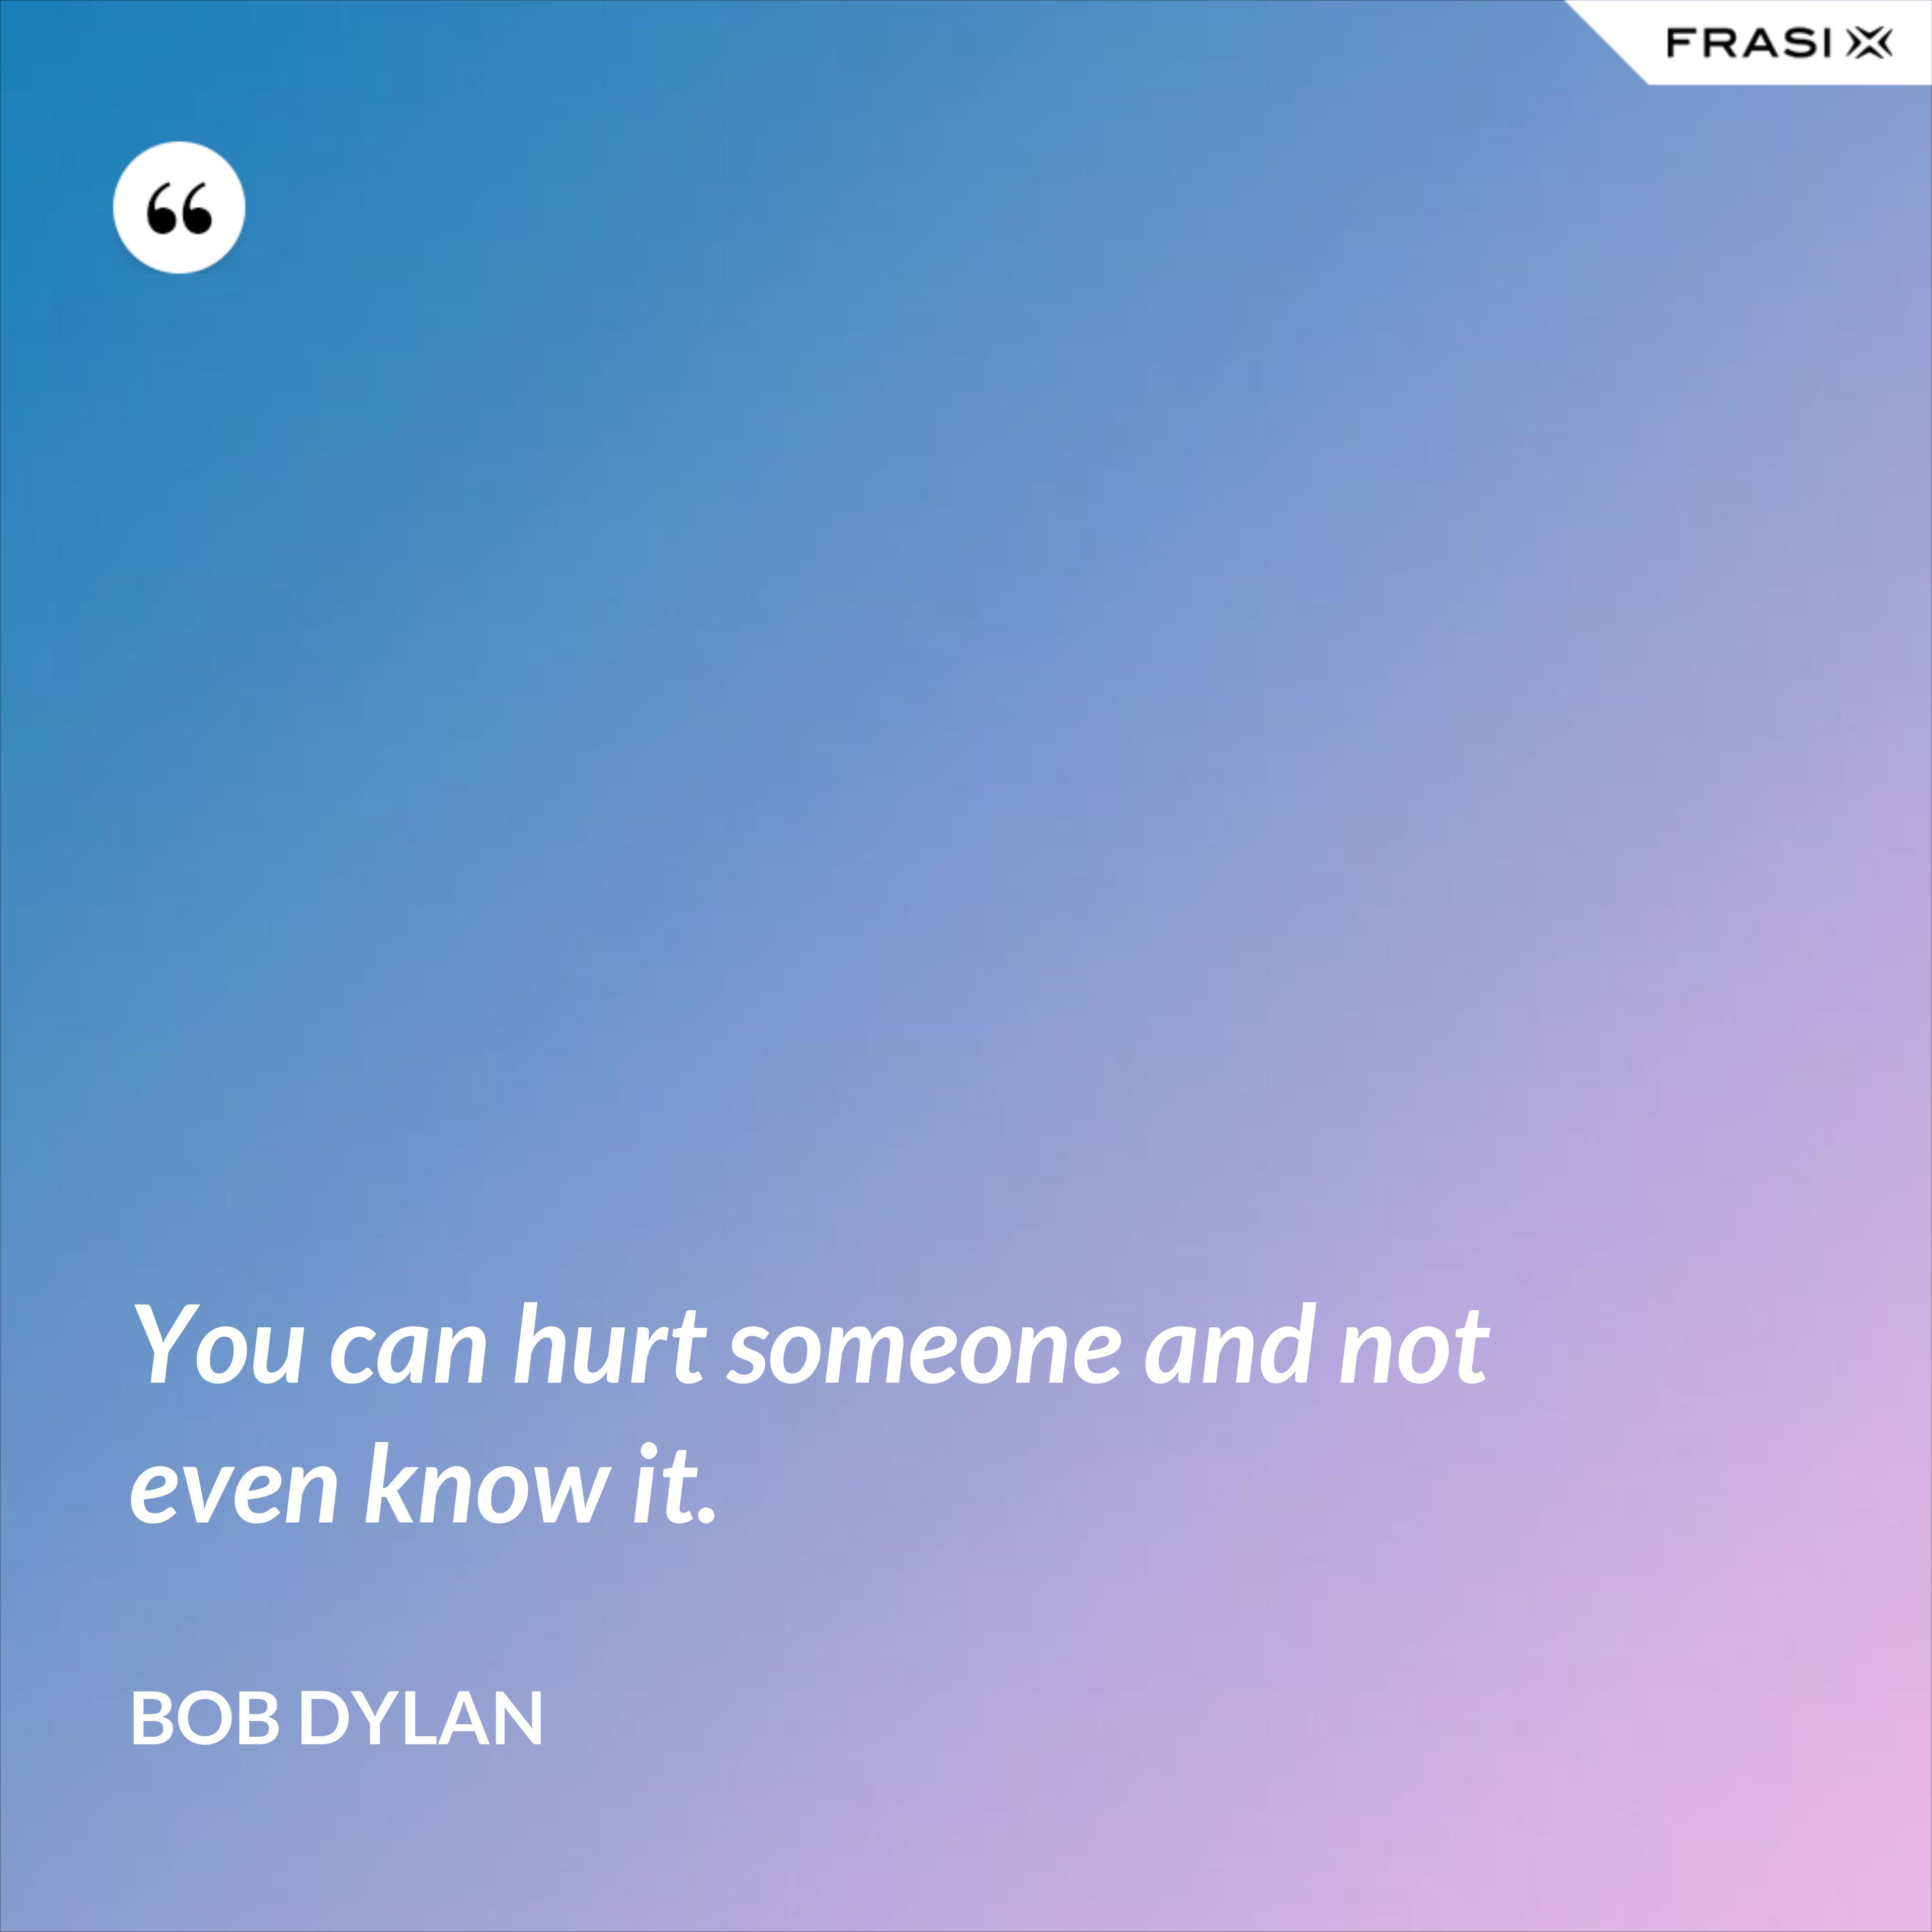 You can hurt someone and not even know it. - Bob Dylan